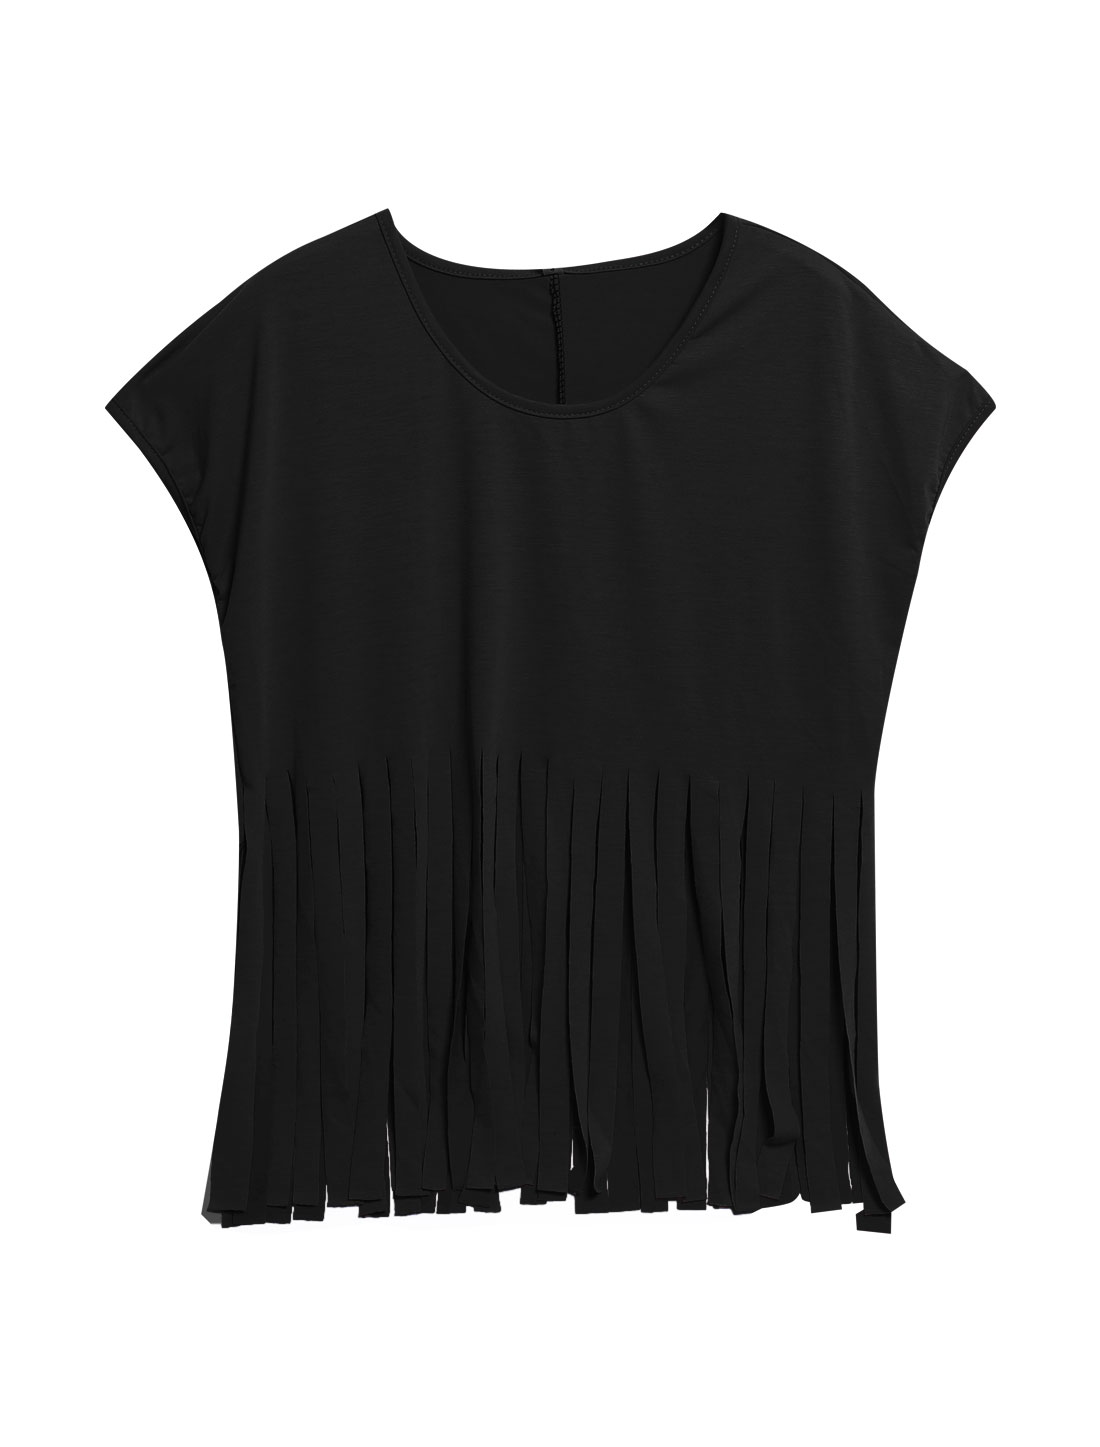 Women Short Batwing Sleeve Tassels Hem Loose Top Blouse Black XS